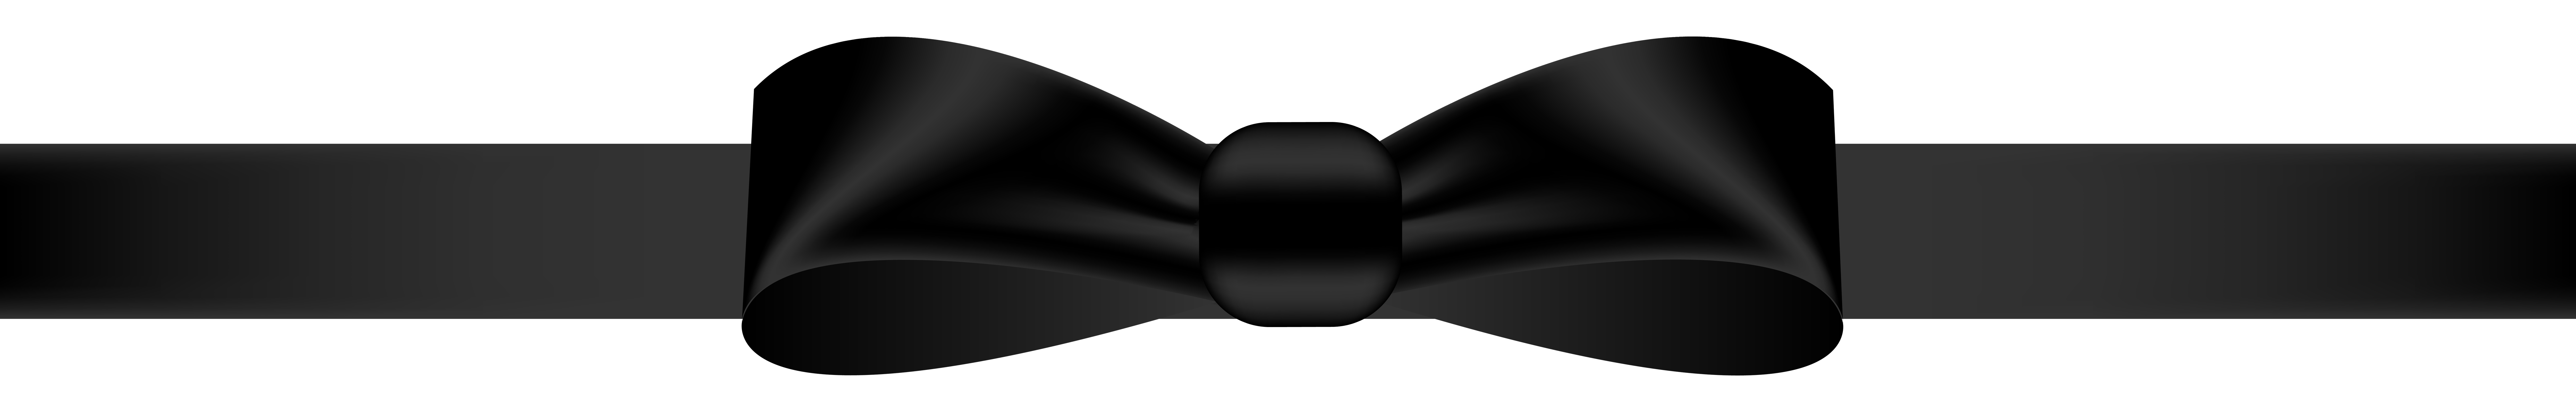 Tie clipart black bow ribbon Gallery Transparent Bow Art Image